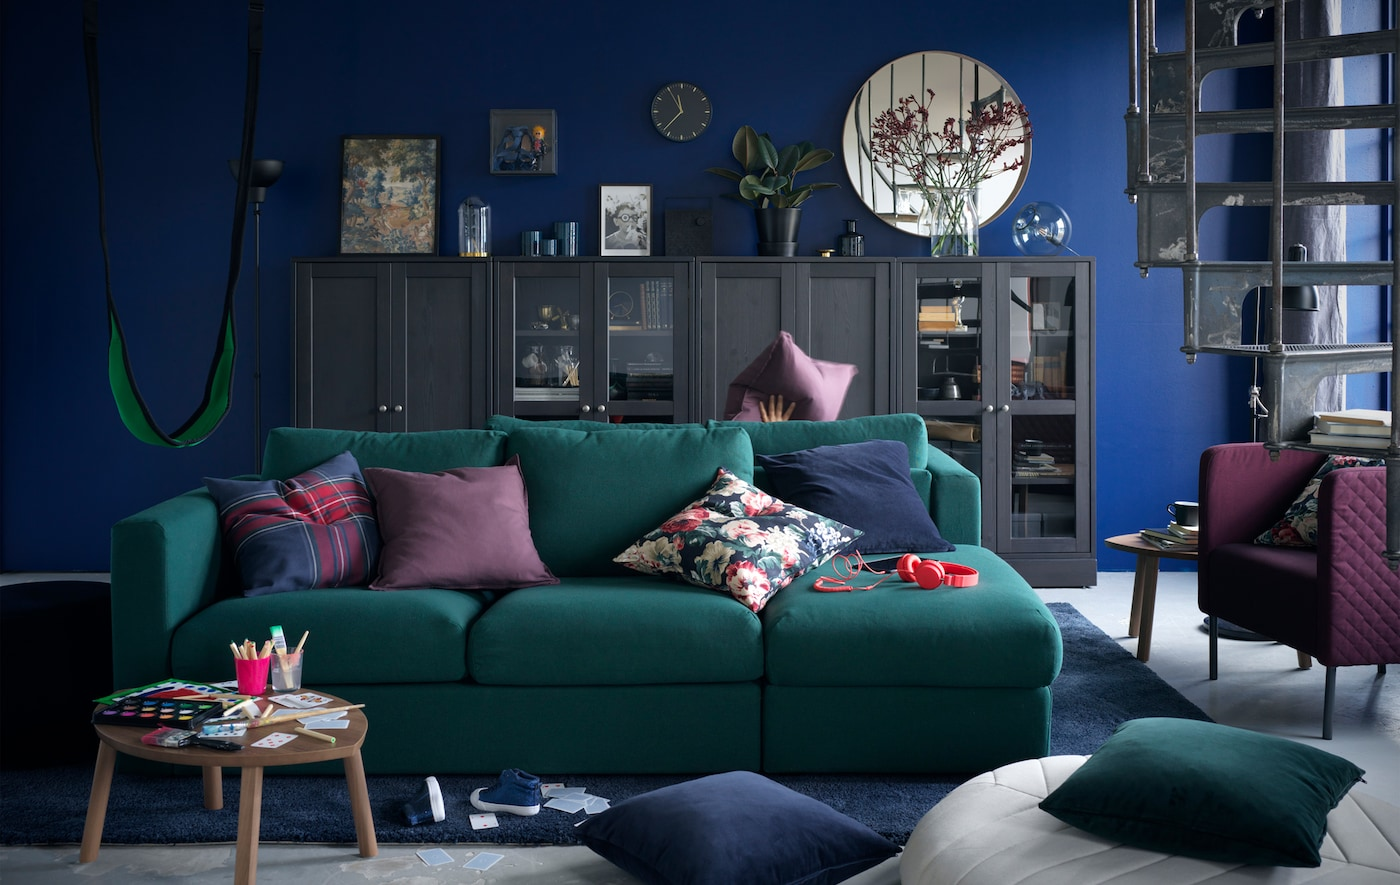 A comfortable IKEA VIMLE sofa serves as a much loved centrepiece for the living room.